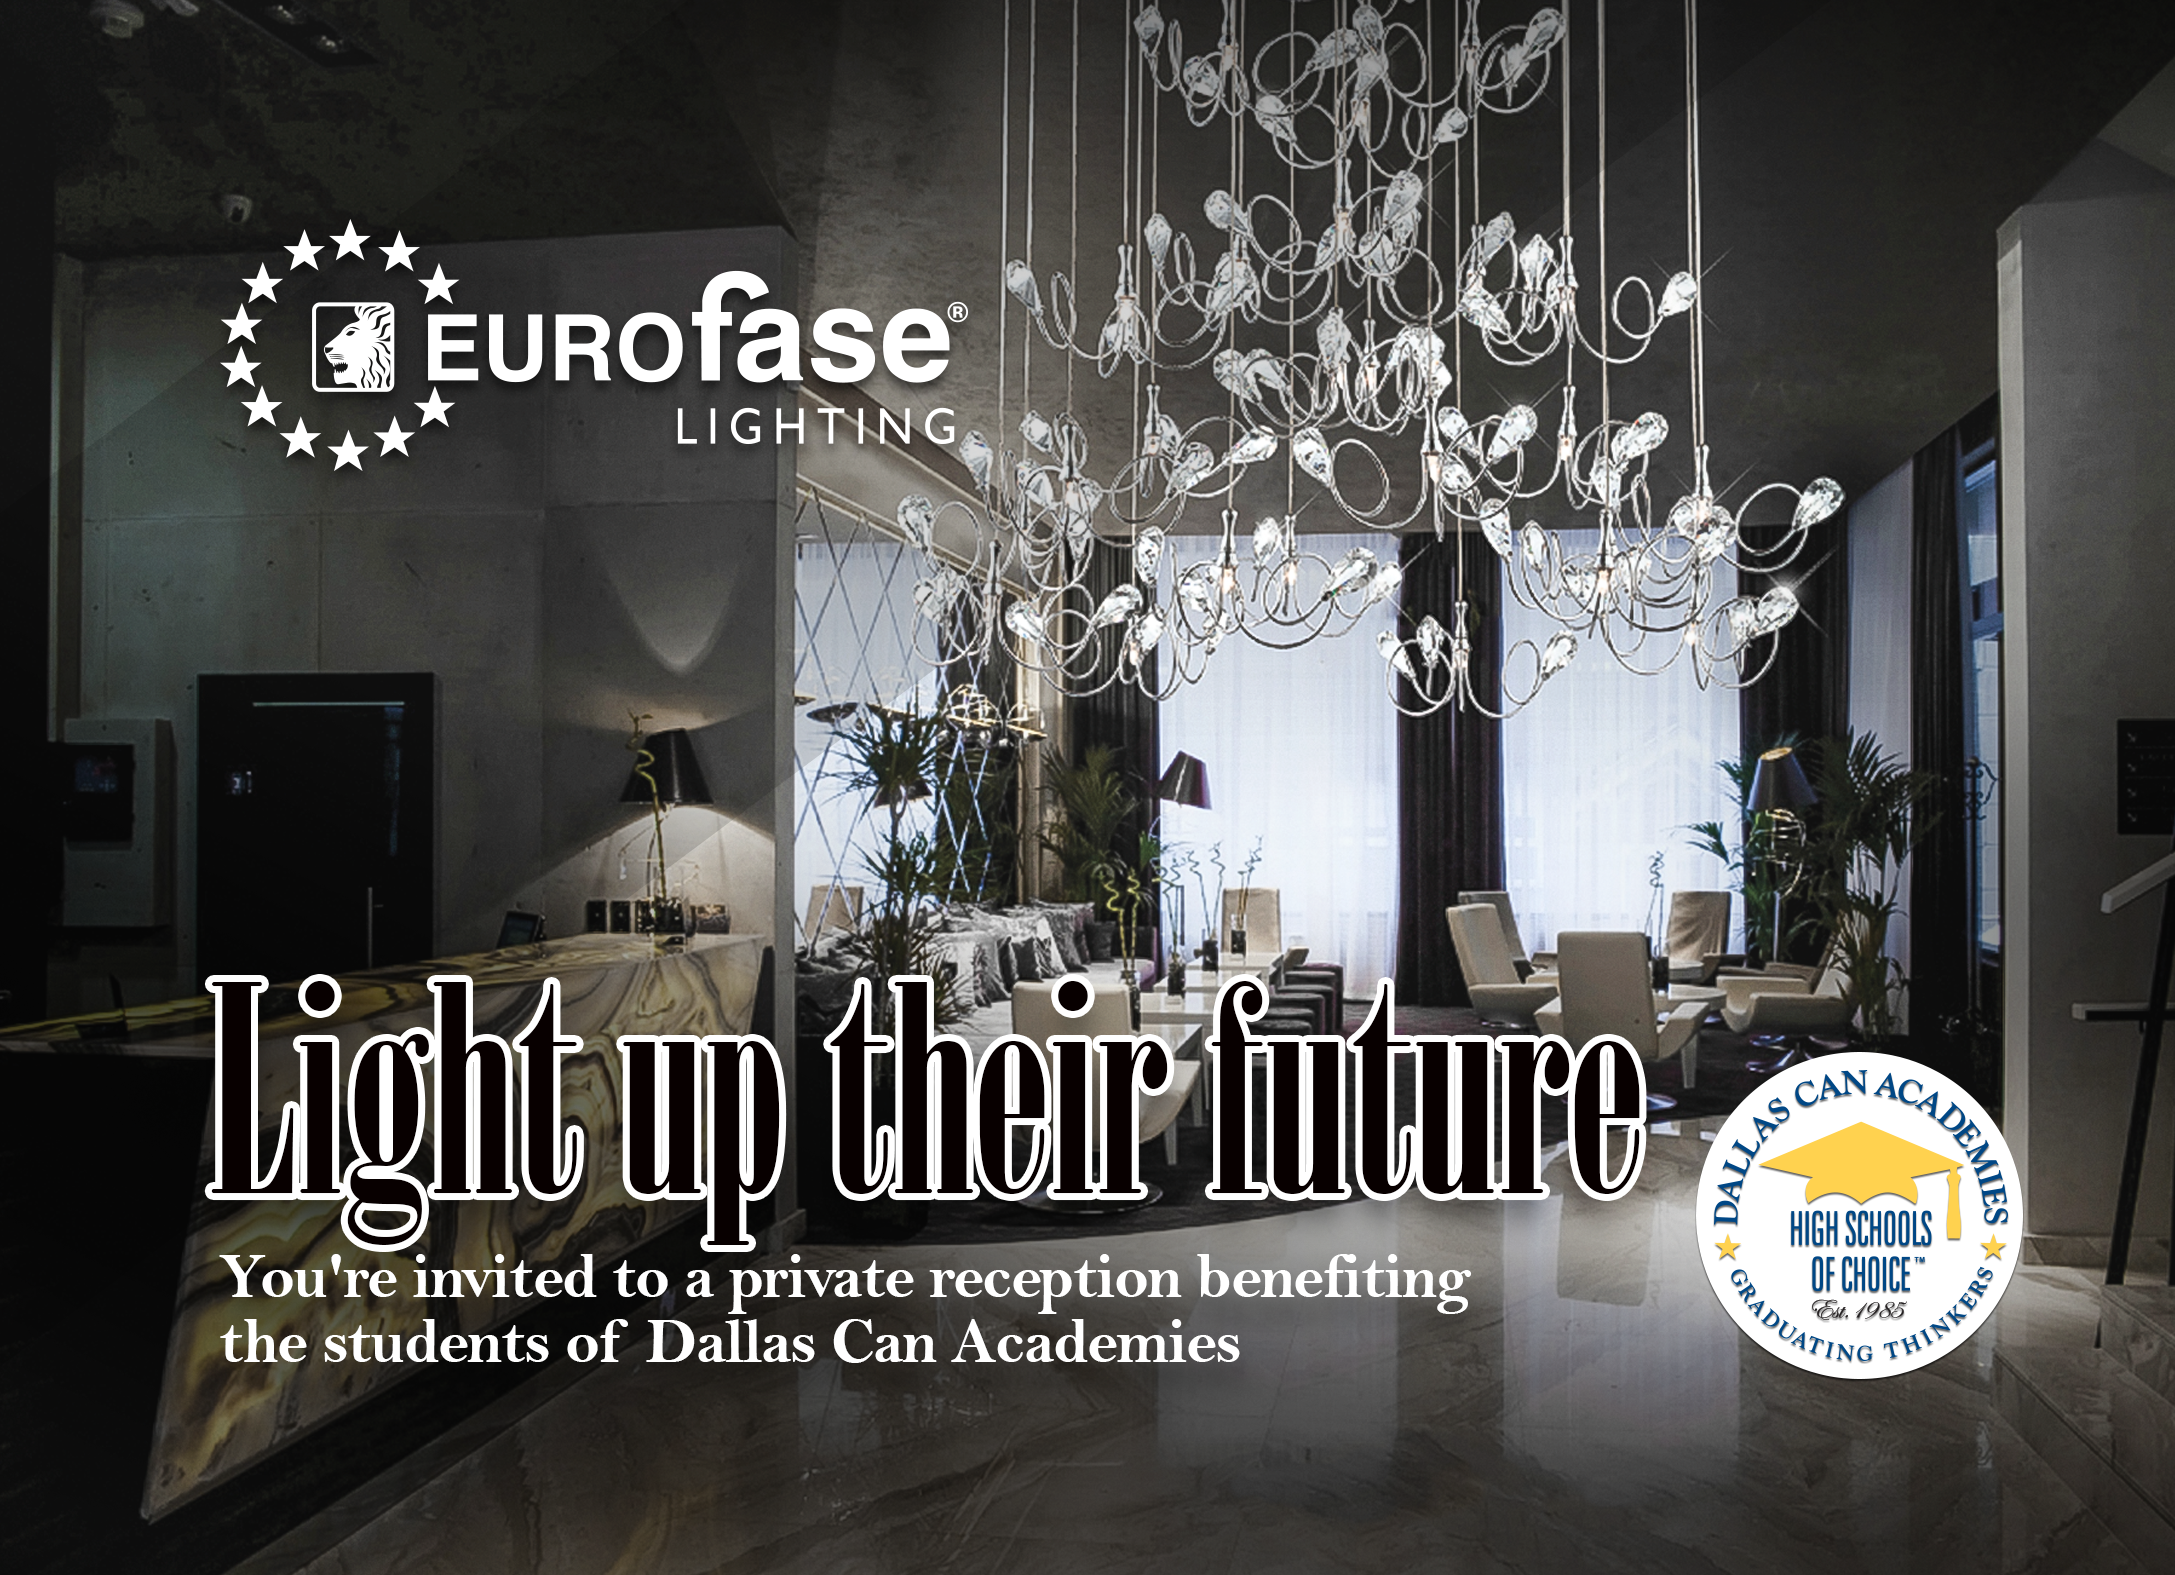 Light Up Their Future presented by Eurofase